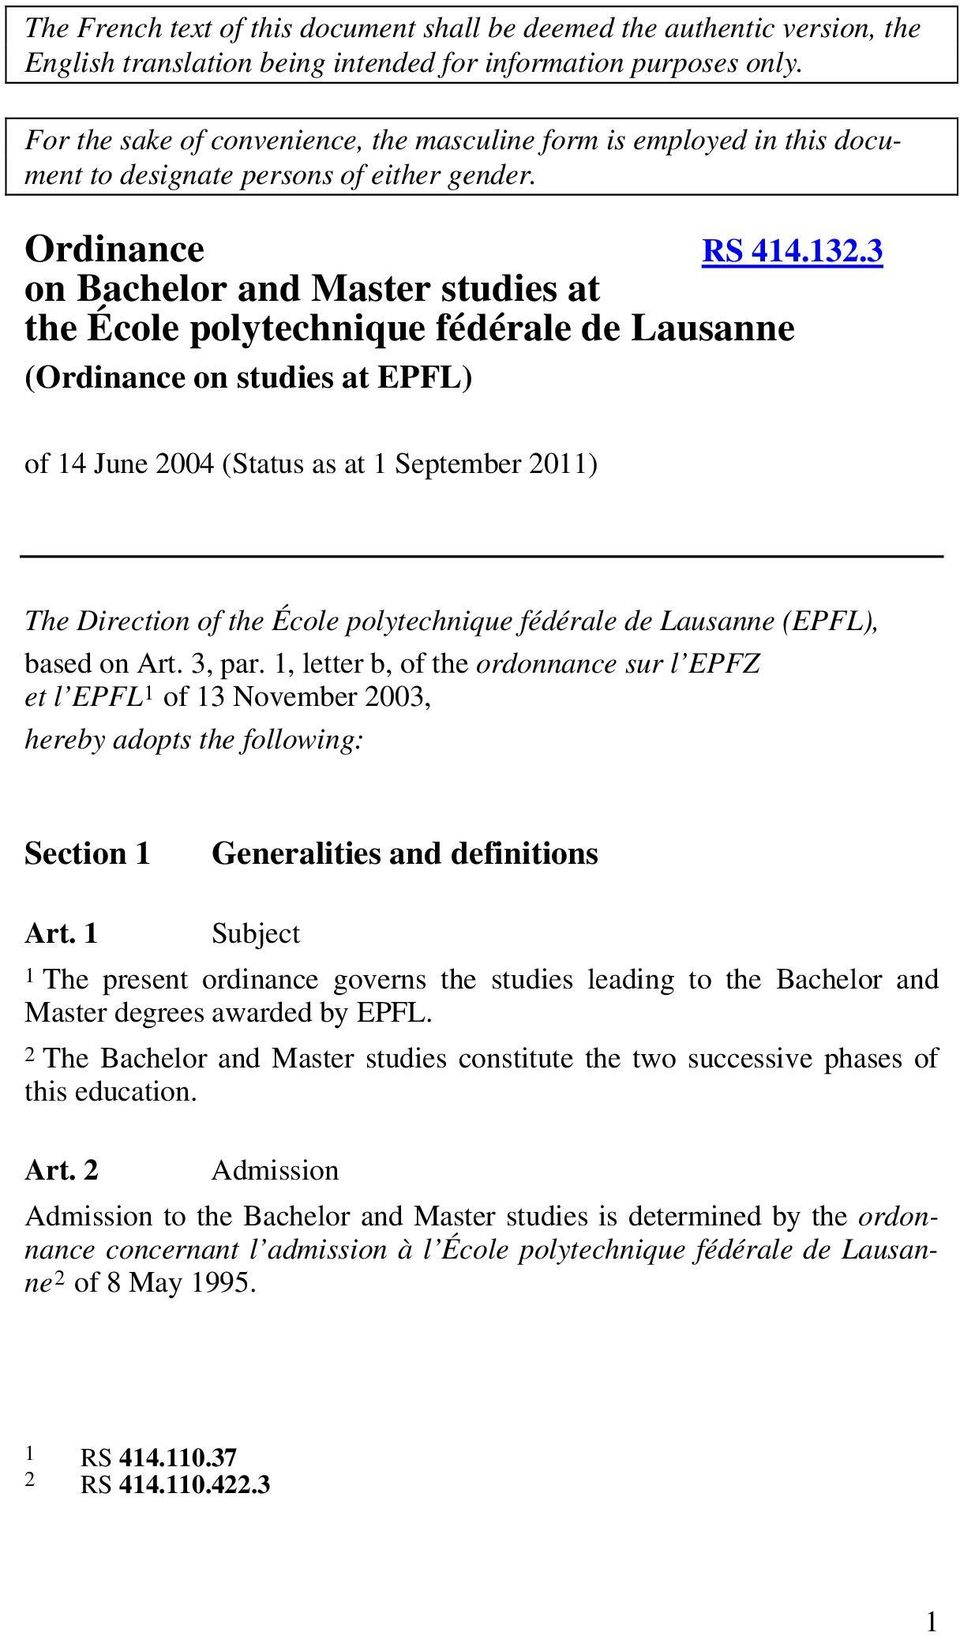 3 on Bachelor and Master studies at the École polytechnique fédérale de Lausanne (Ordinance on studies at EPFL) of 14 June 2004 (Status as at 1 September 2011) The Direction of the École